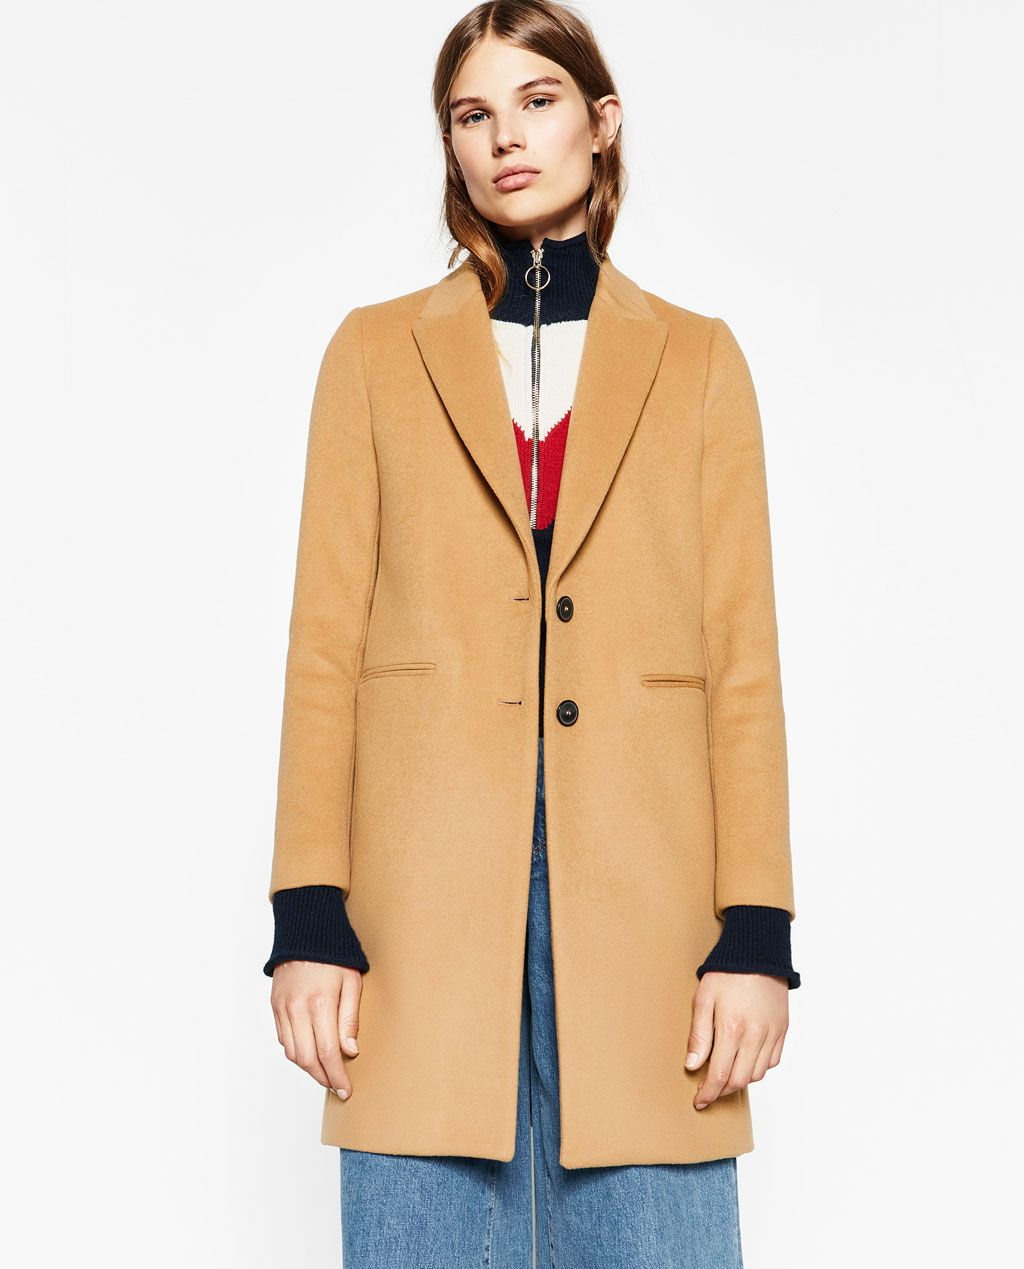 492c4cd0 Image 2 of MASCULINE COAT from Zara   Fashion Ideas   Outerwear ...